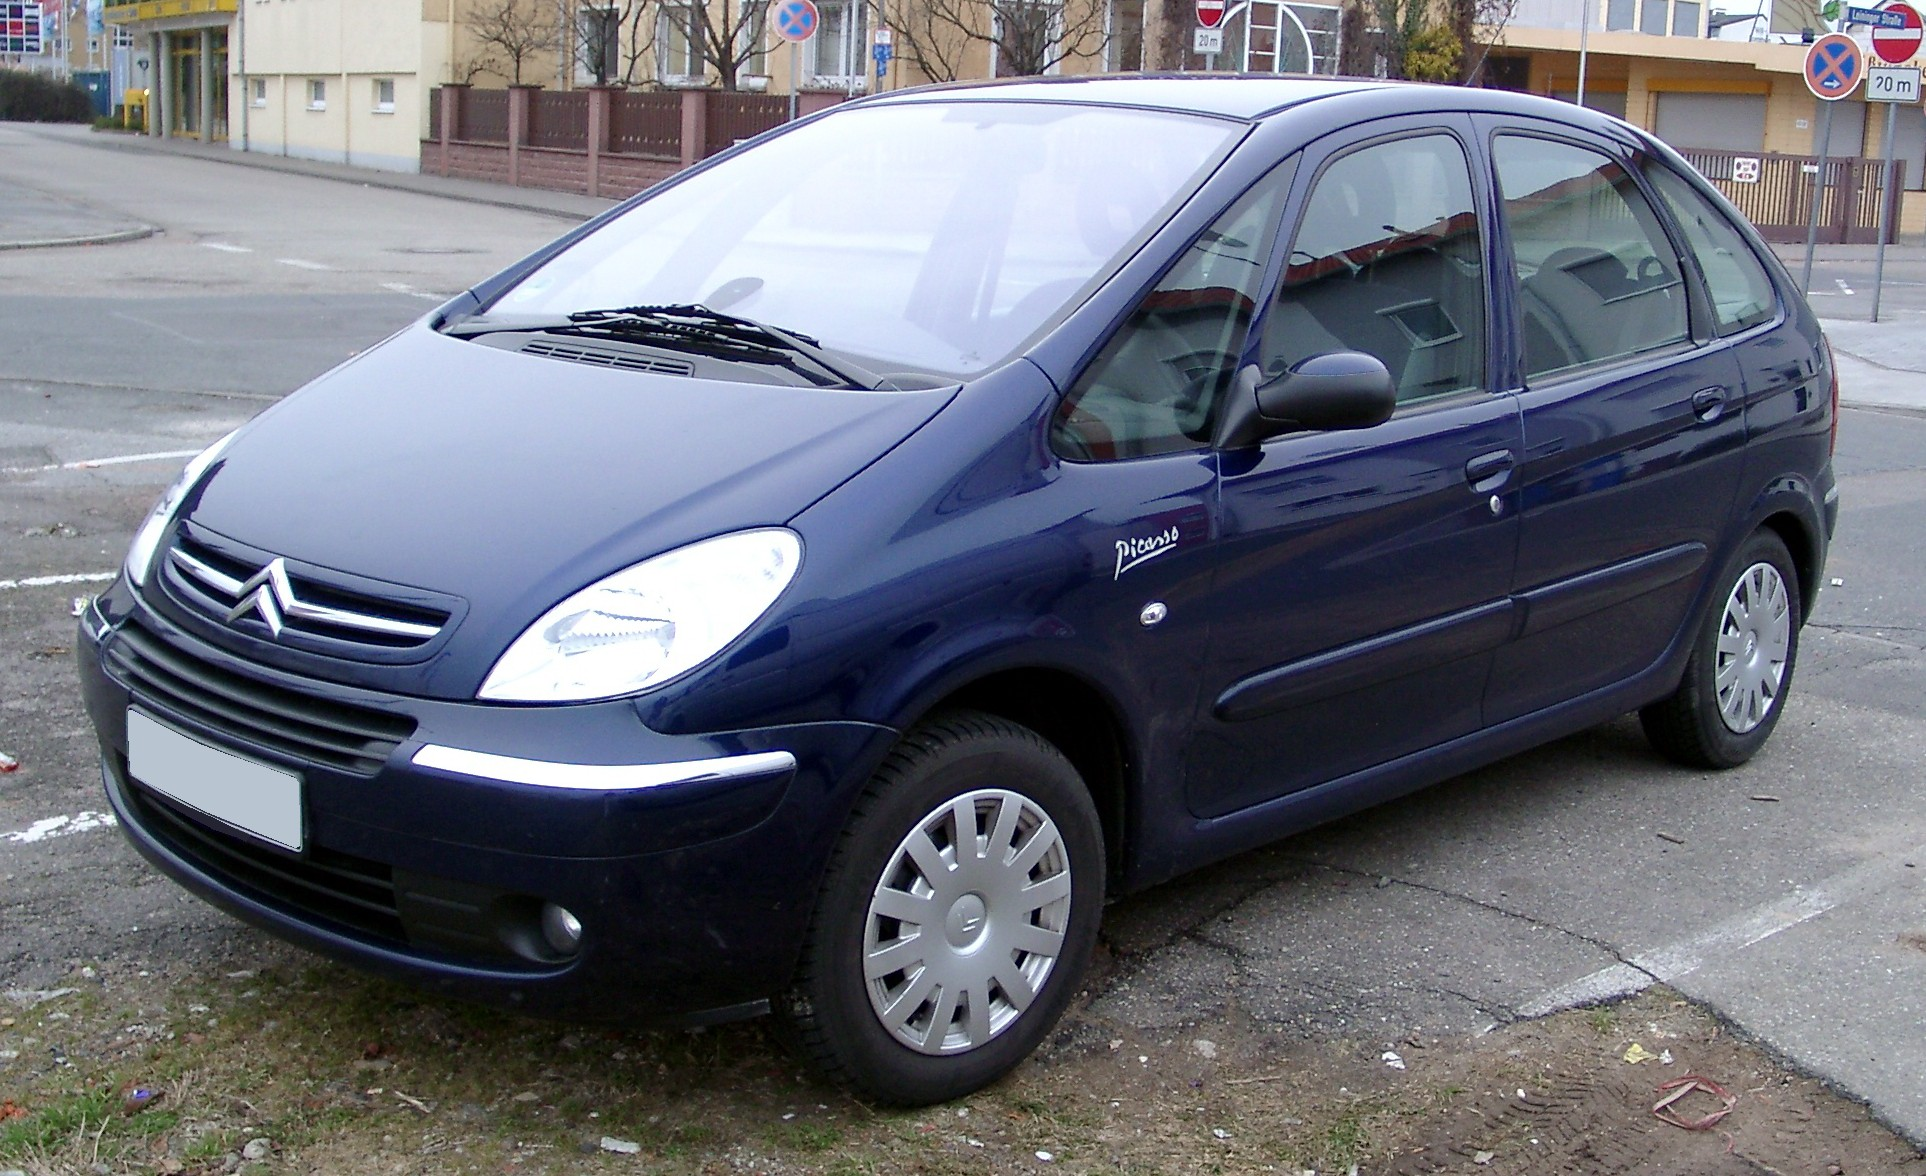 Citroen Xsara Picasso Photos News Reviews Specs Car